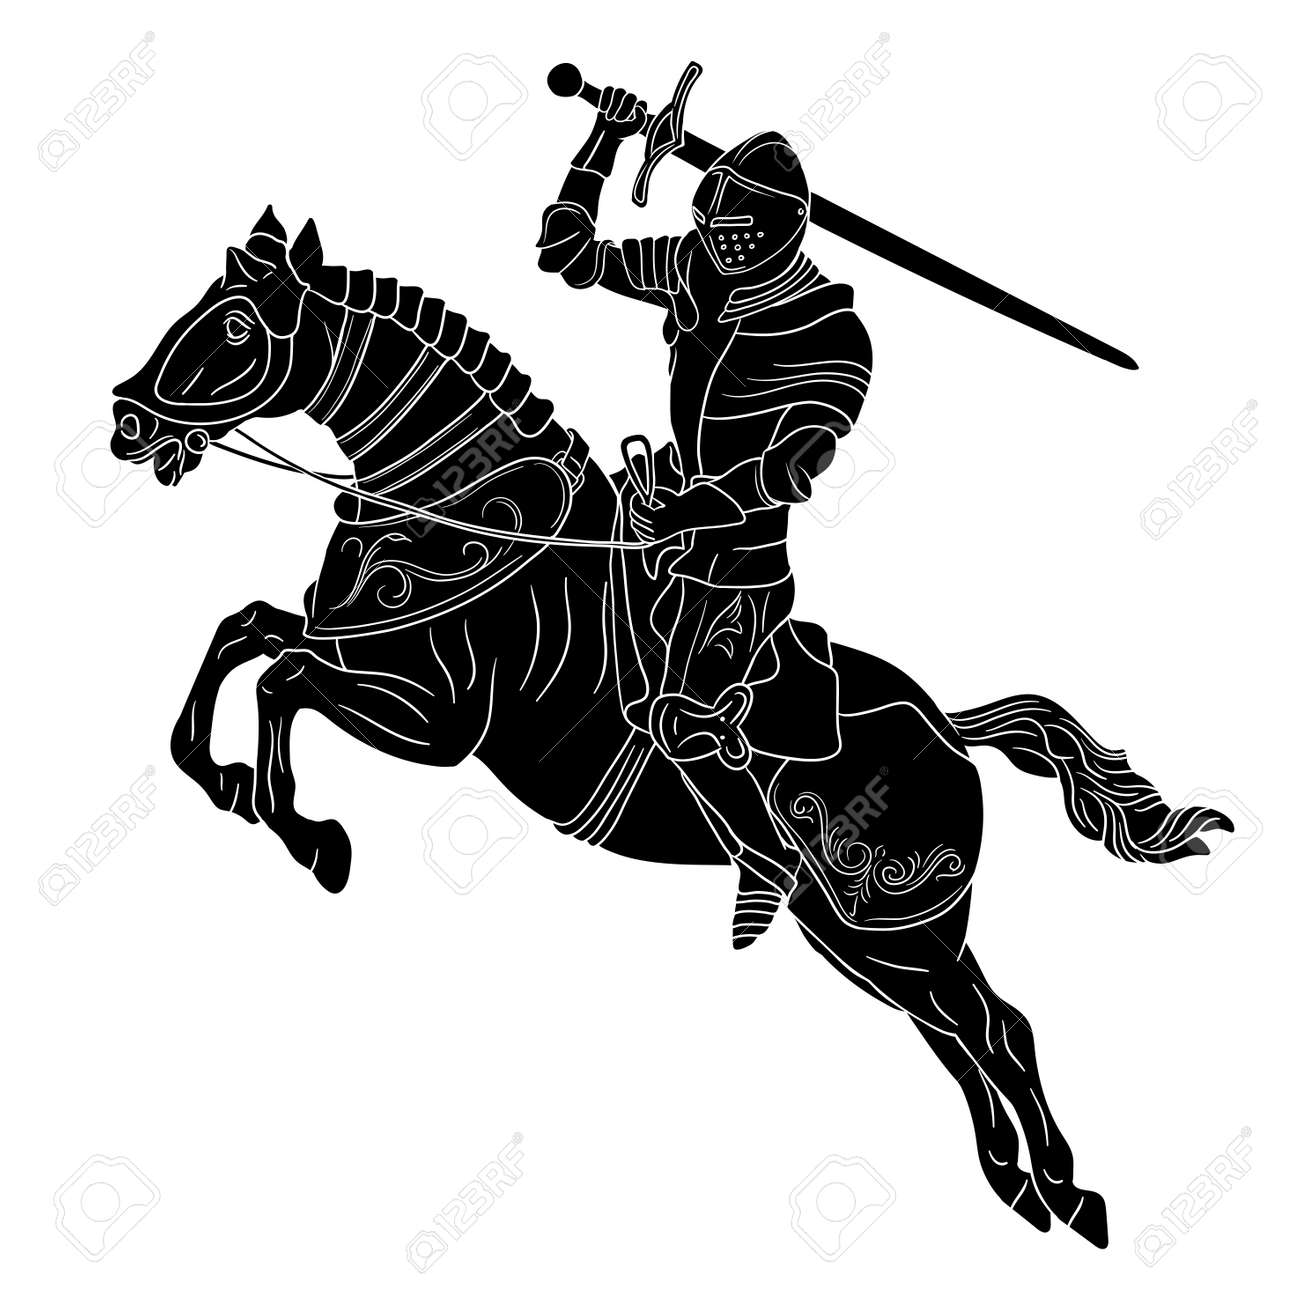 A knight in medieval armor on horseback with a sword in his hands prepares to strike. Figure isolated on white background. - 164134363